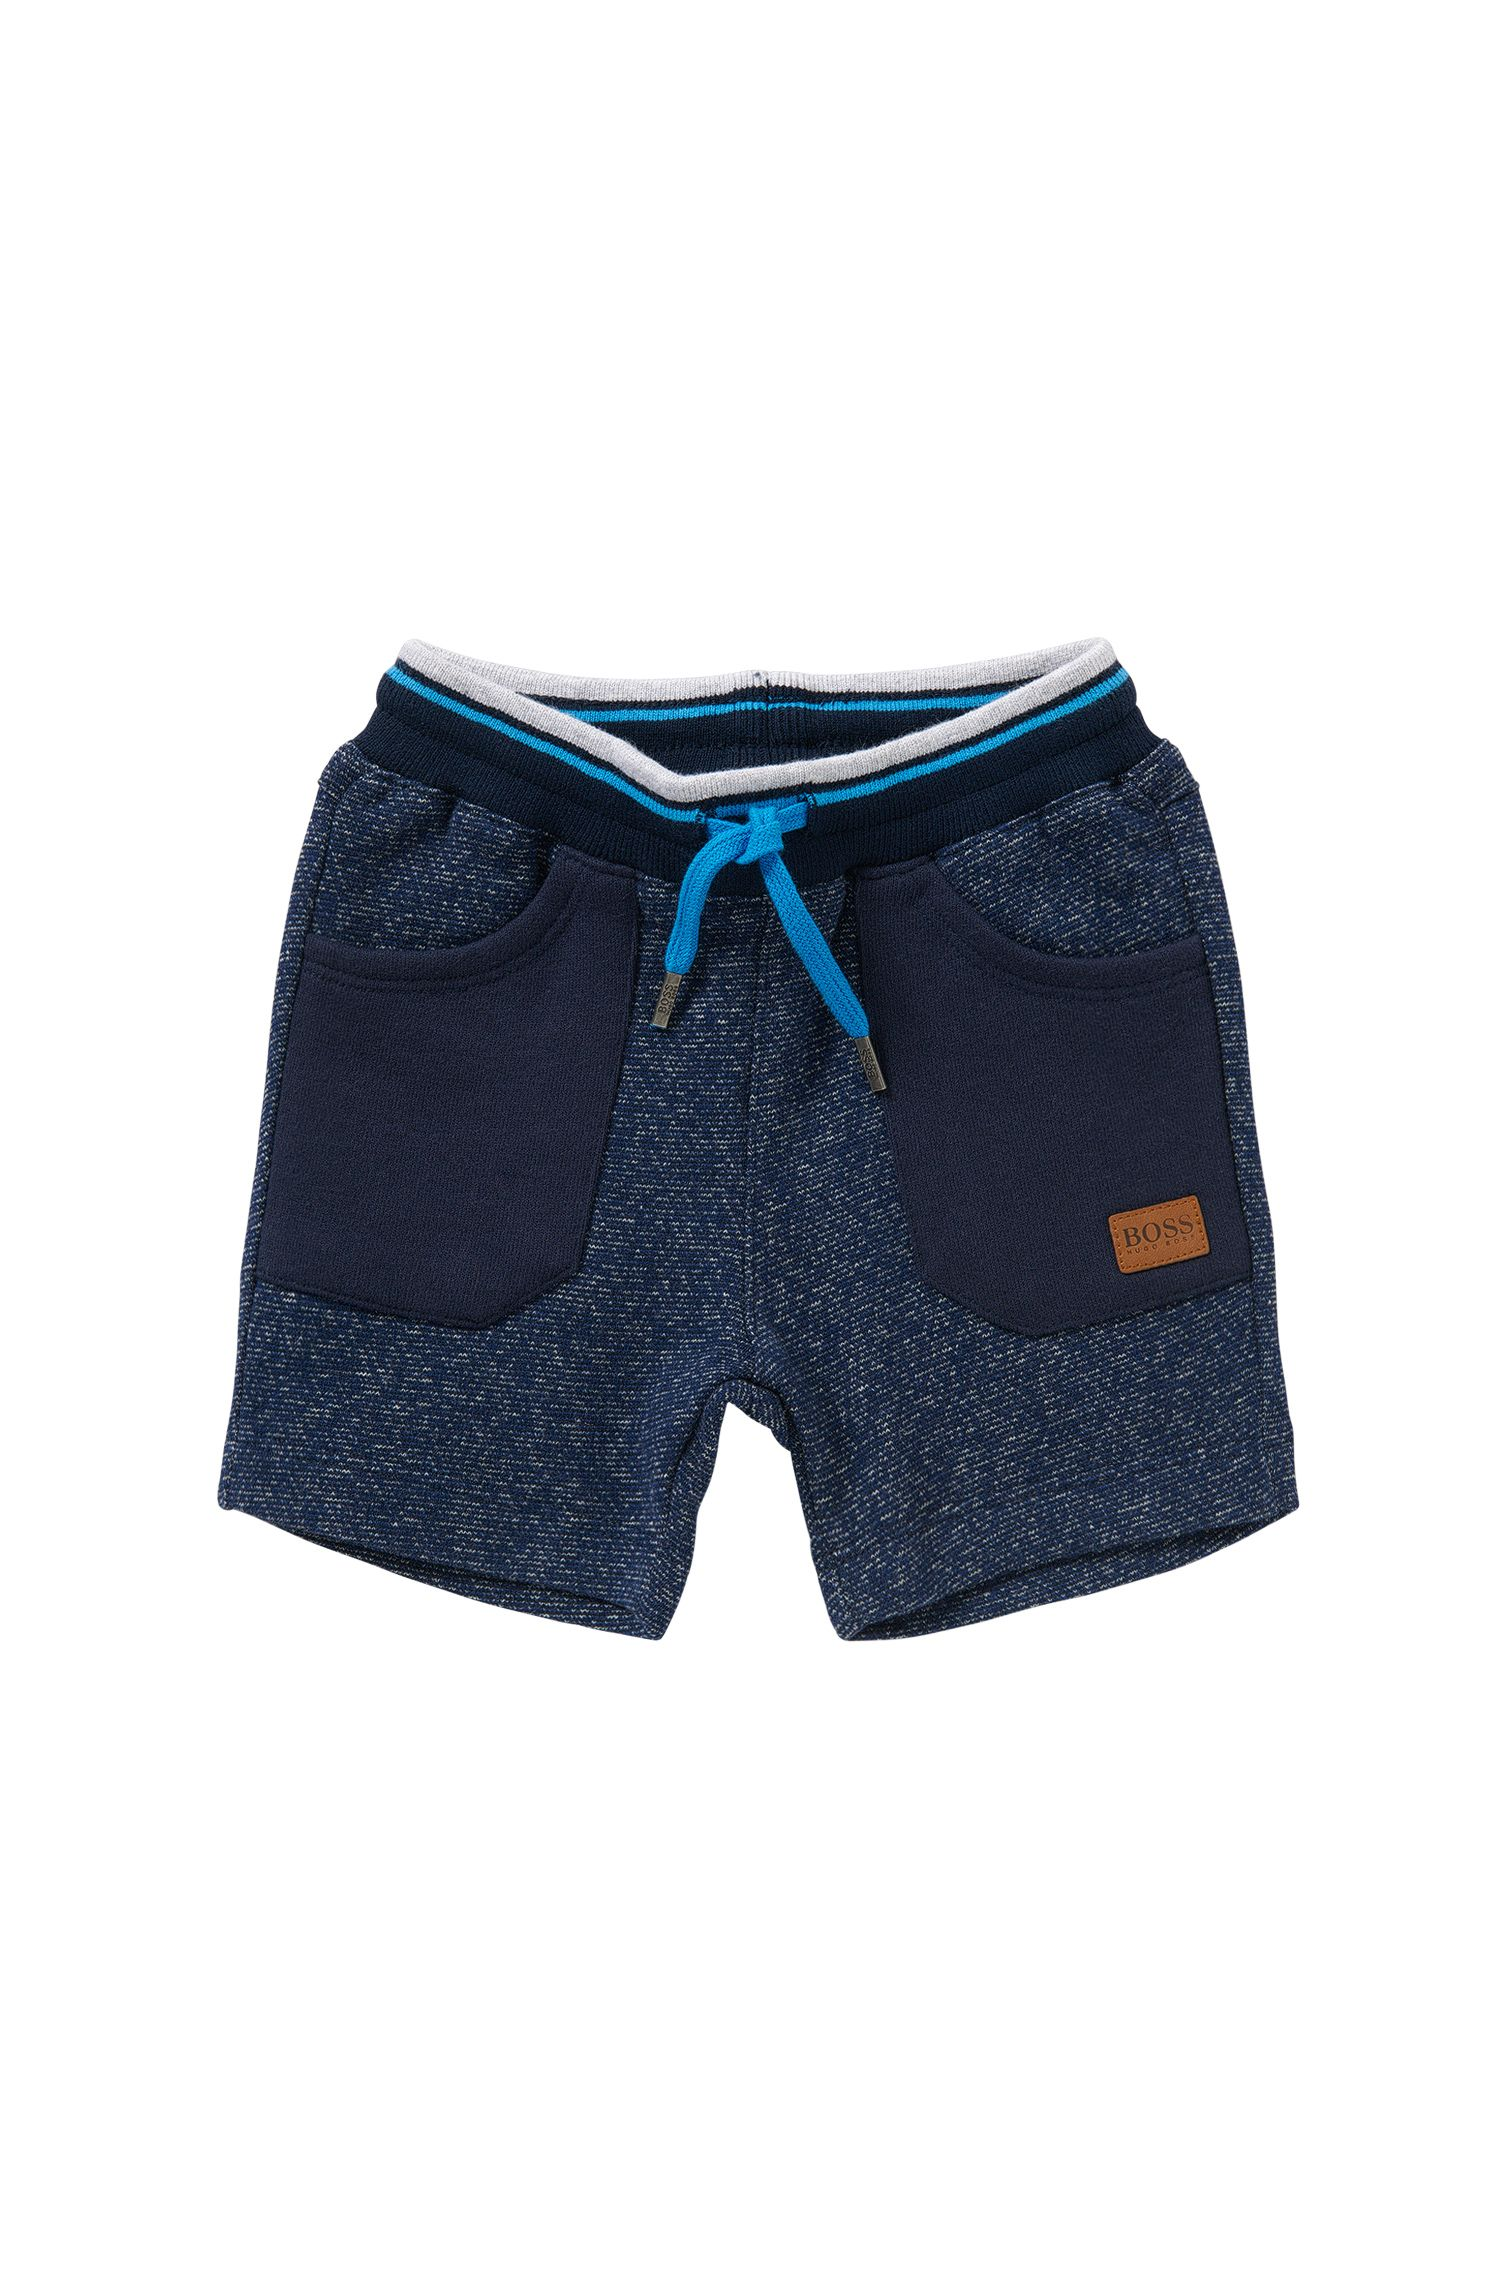 'J04217' | Toddler Cotton Melange Shorts